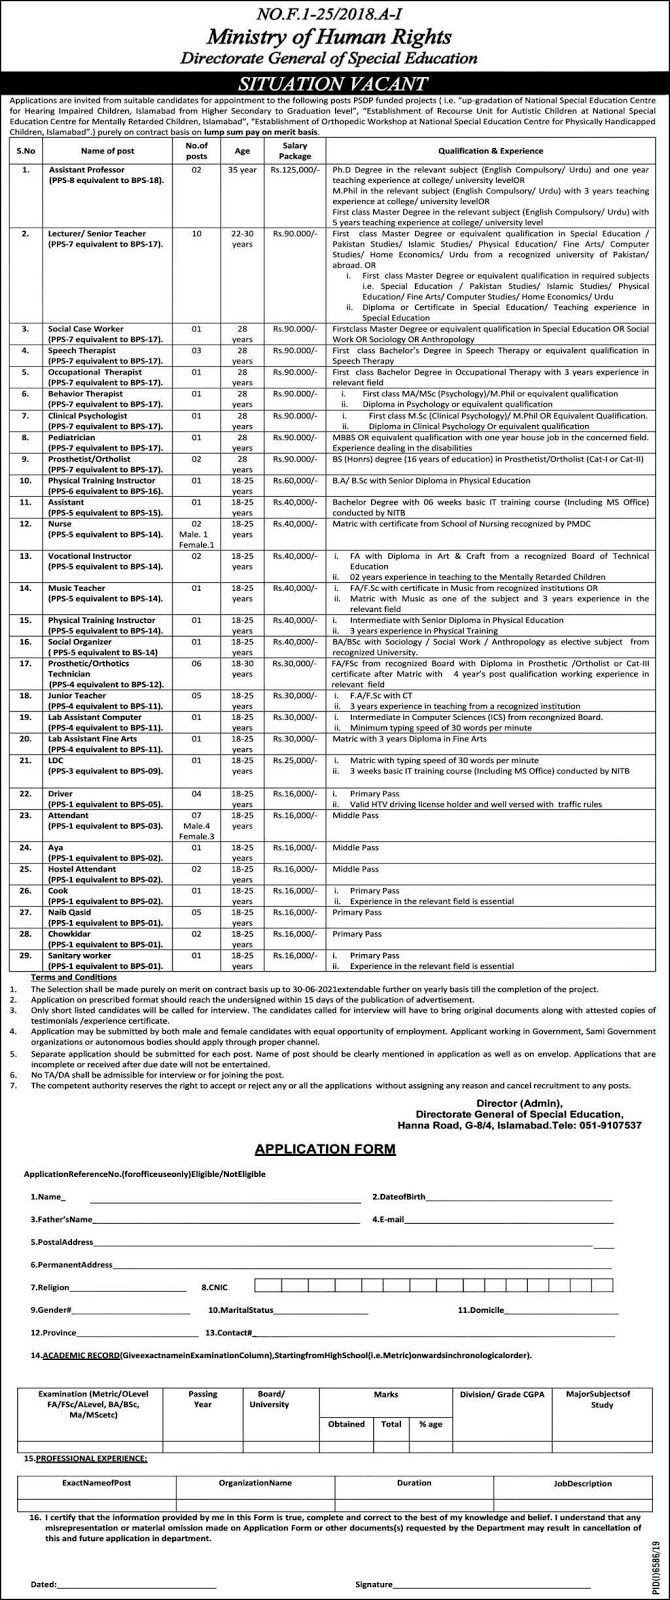 Directorate General of Special Education DGSE Jobs 2020